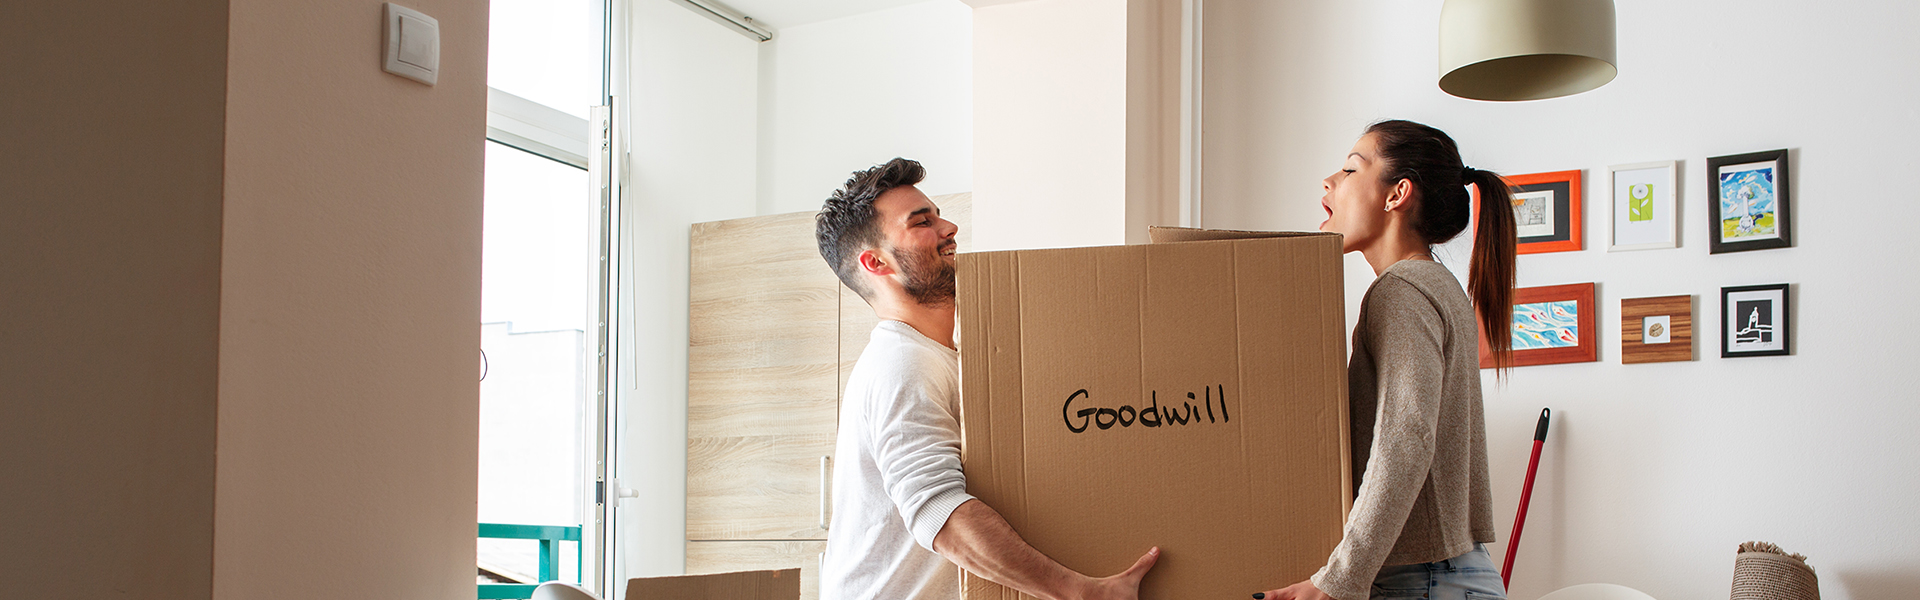 Goodwill Donations | Find Goodwill Donation Centers Near You